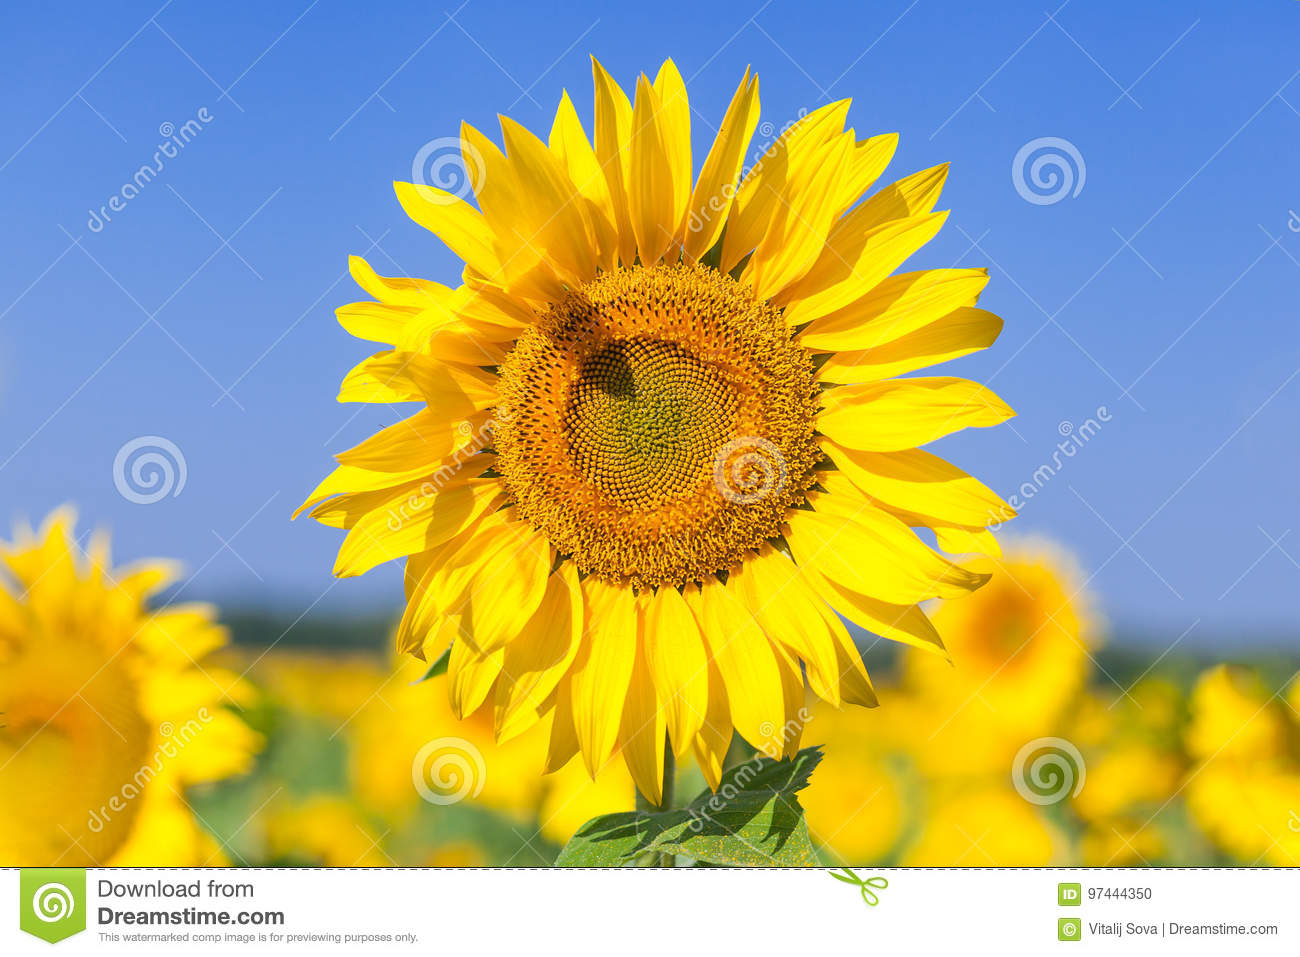 Field of yellow sunflowers stock photo. Image of blurred ...